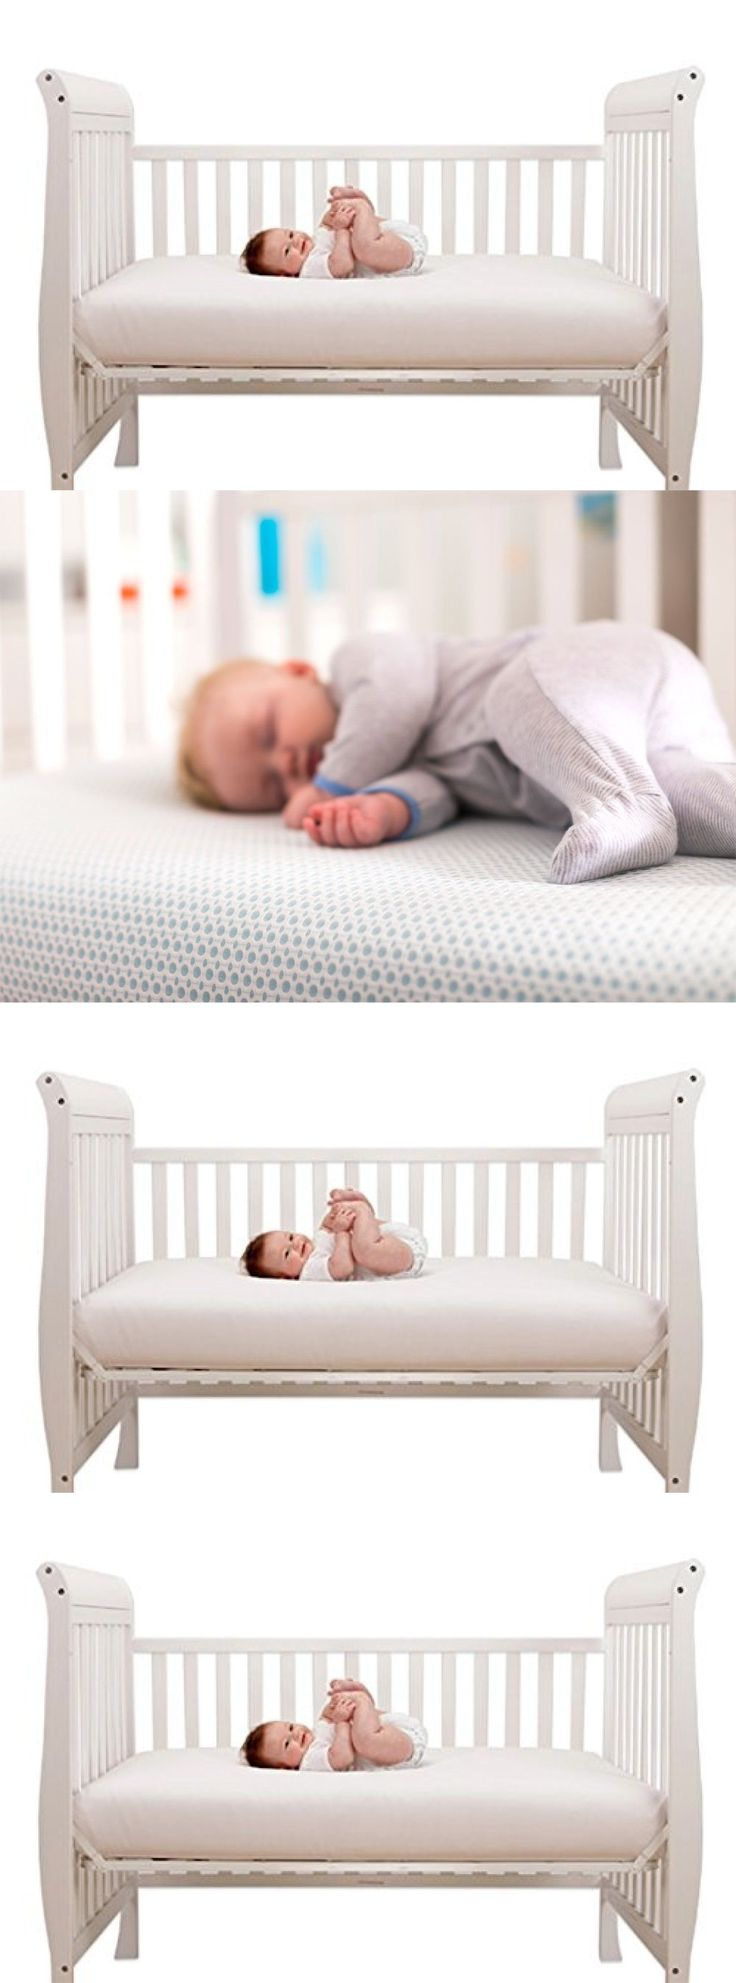 Crib Mattresses 117035 Baby Memory Foam Mattress Standard Bed Infant Comfort 28 X52 3